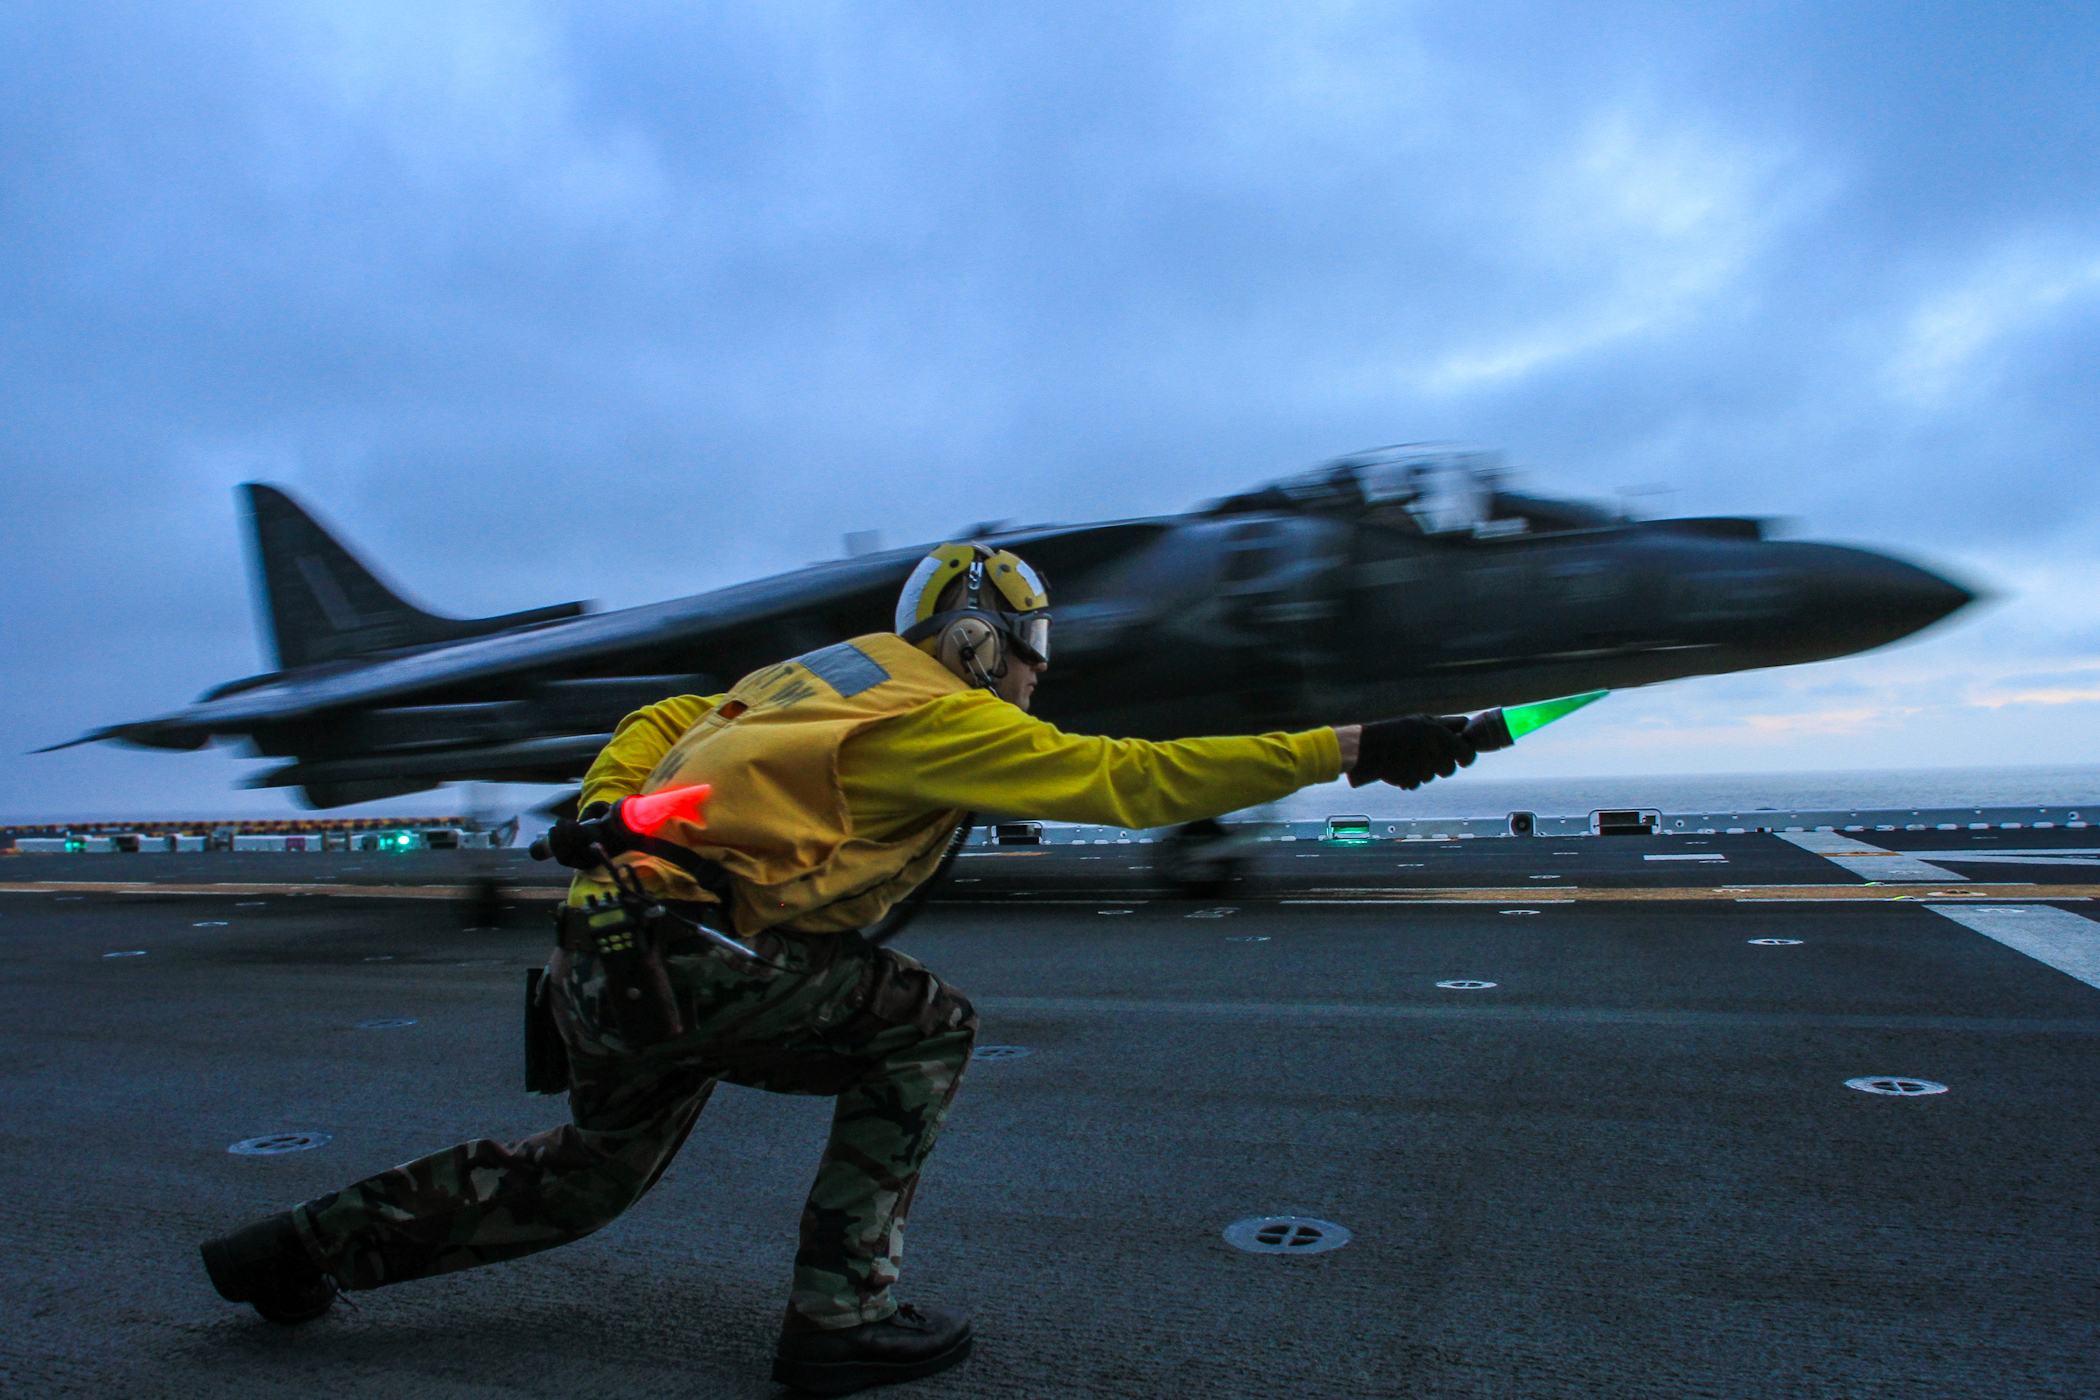 File:A flight deck crewman clears an AV-8B Harrier to take off during